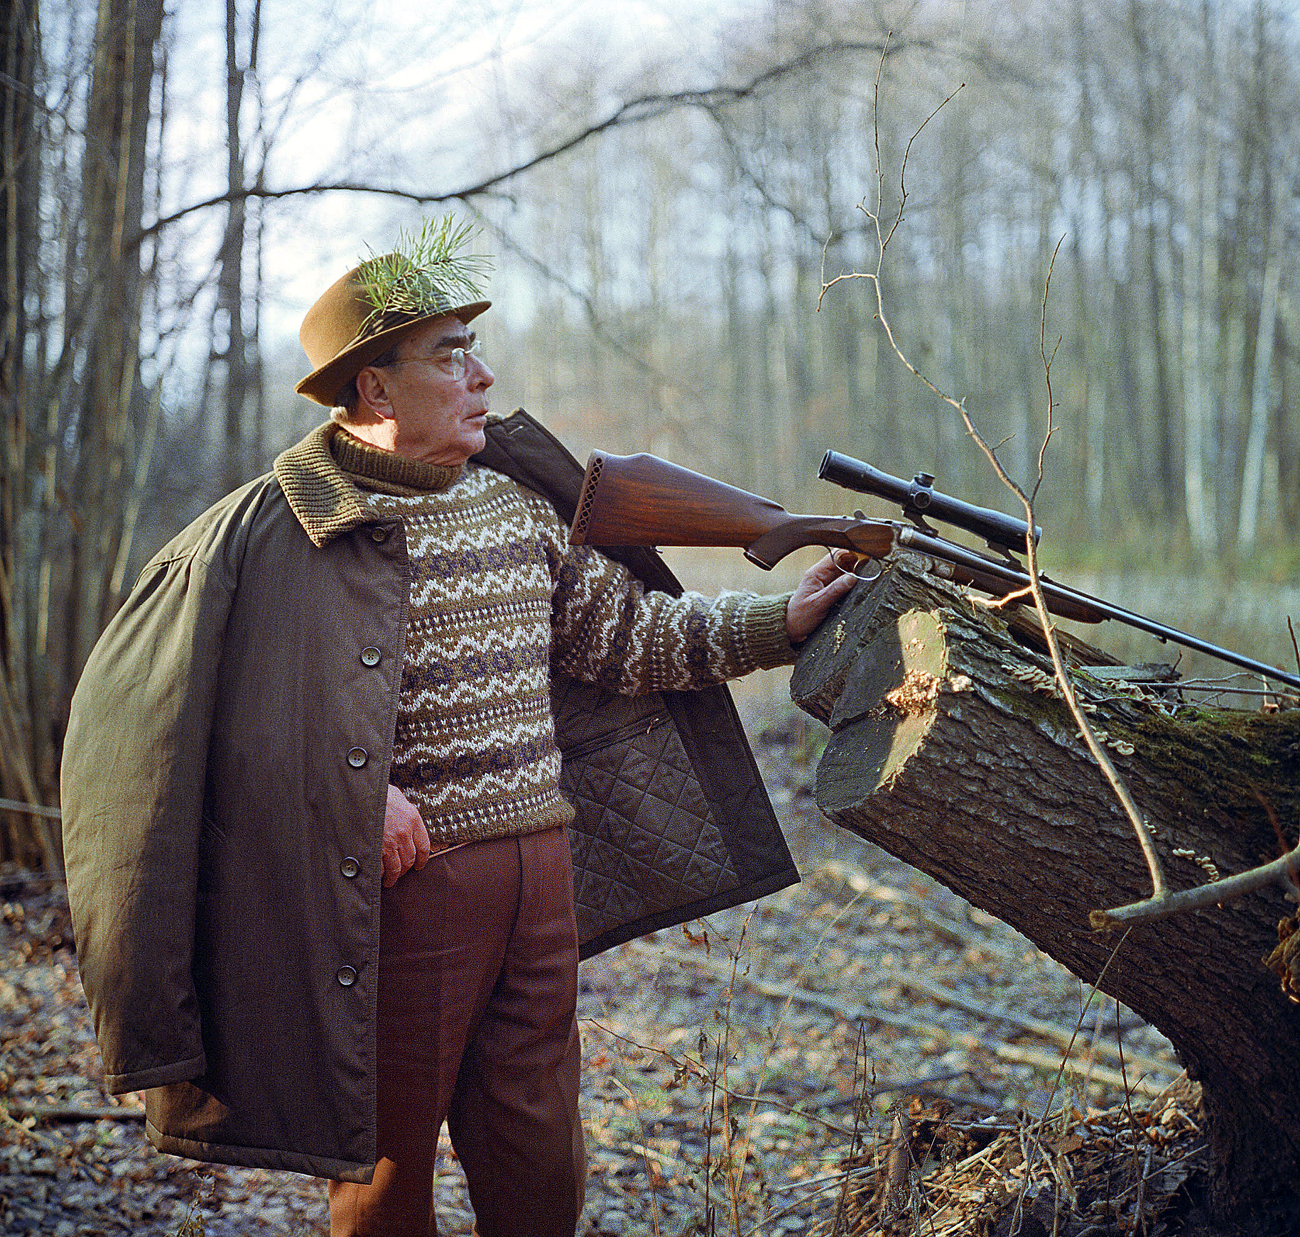 Ukrainian SSR. General Secretary of the Central Committee of the CPSU Leonid Brezhnev at the hunt in Zalesye